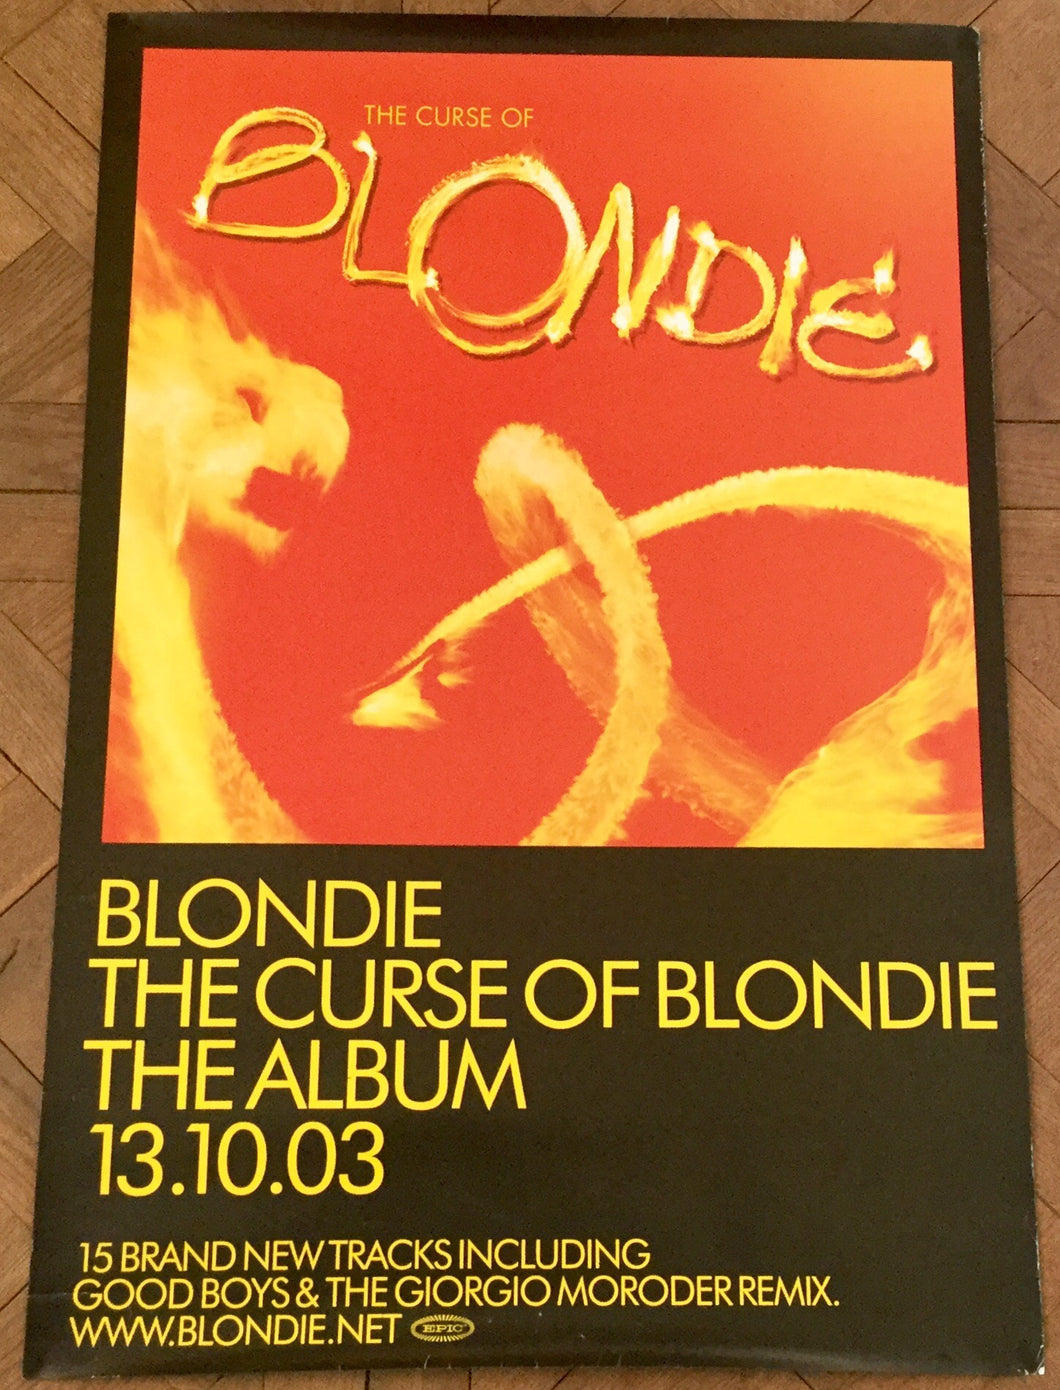 Blondie The Curse of Blondie Album Original Promo Poster Epic Records 2003